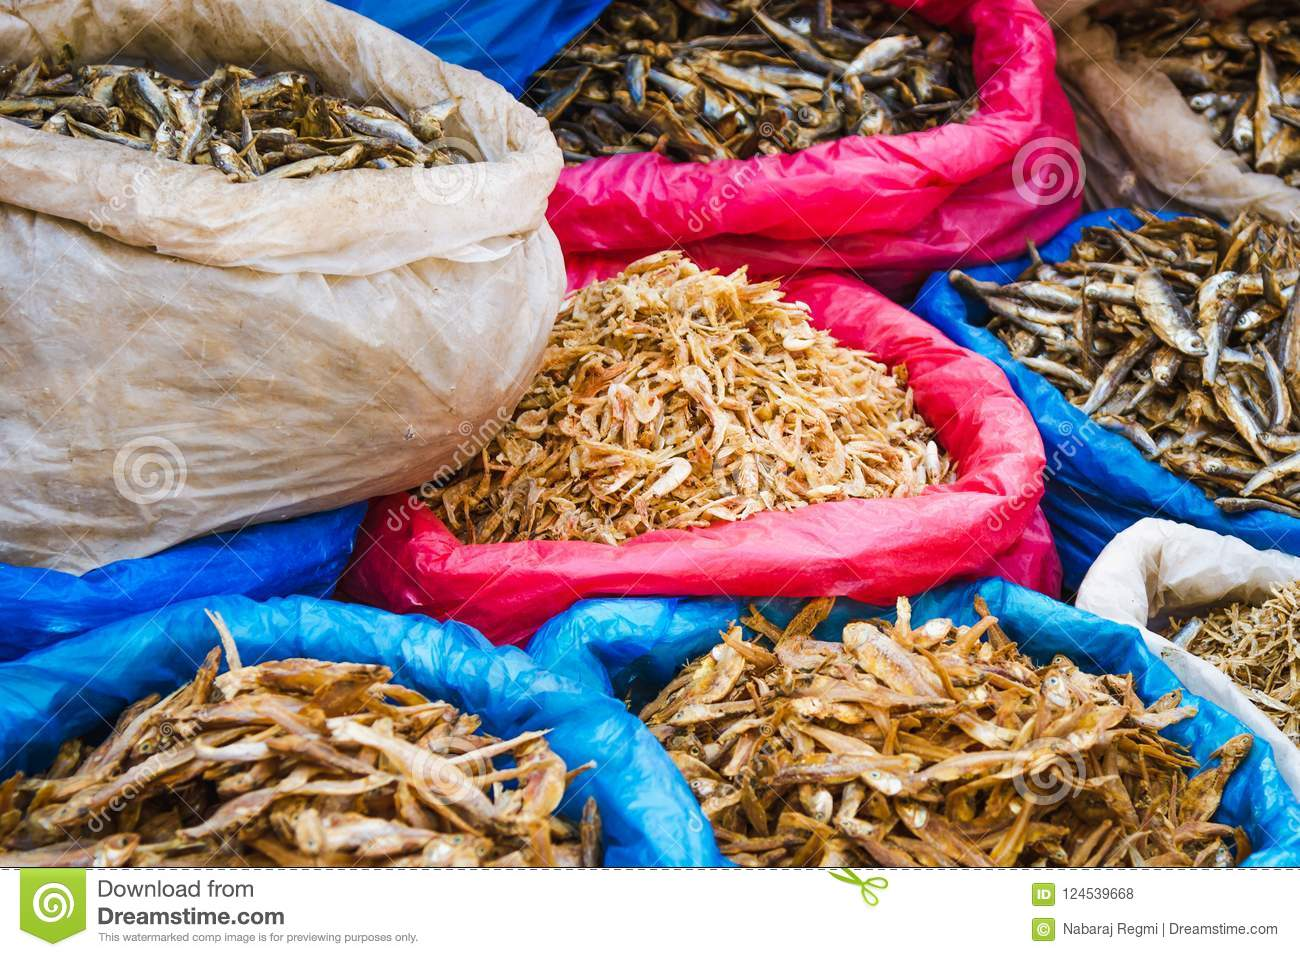 Dry Fish For Sale In The Asian Market Stock Photo - Image of farmers